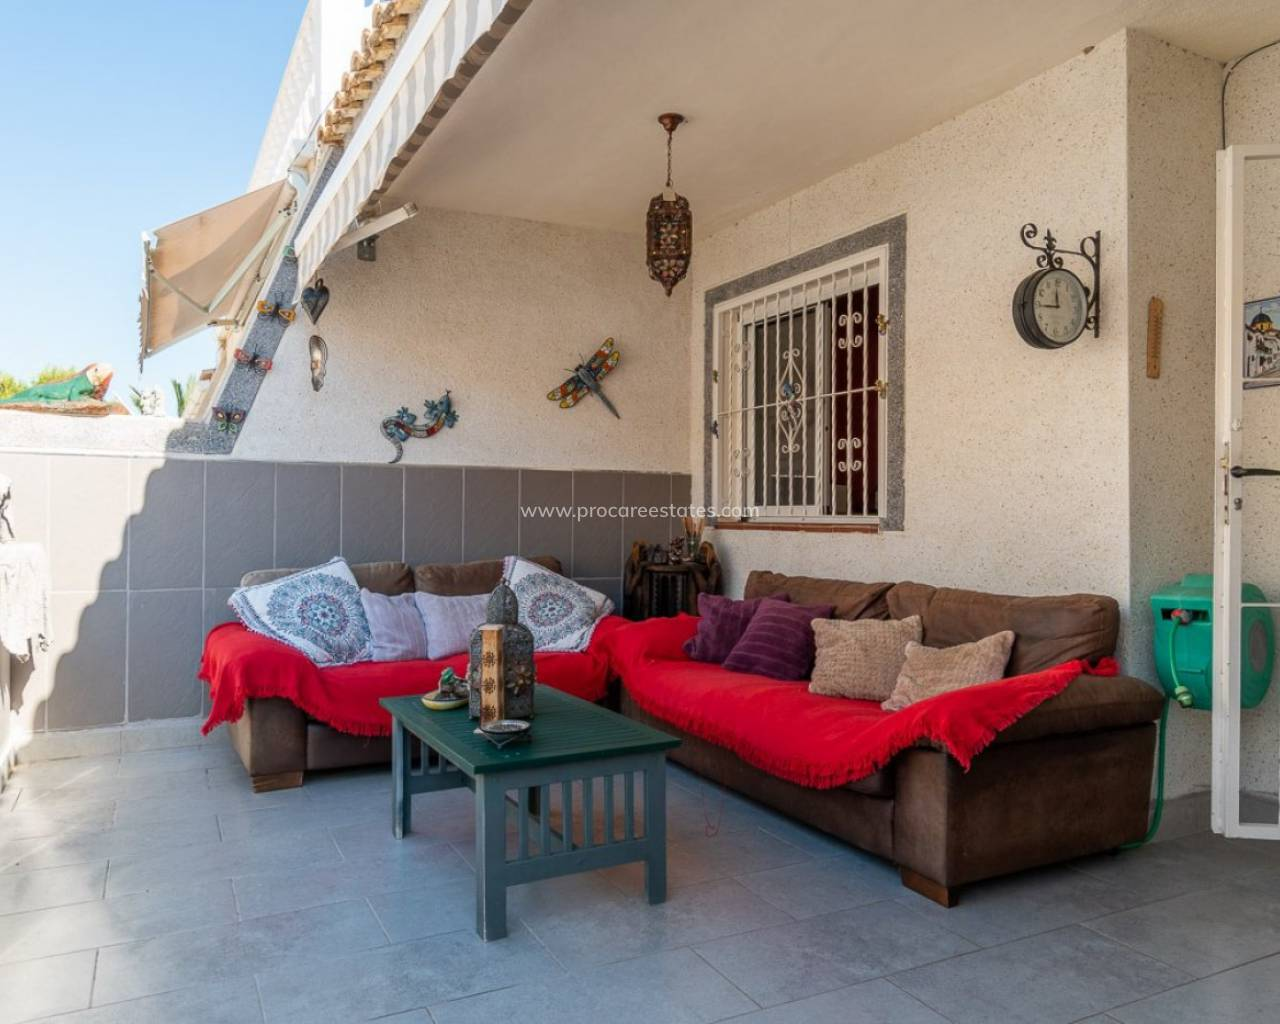 Townhouse - Verkoop - Orihuela Costa - Playa Flamenca